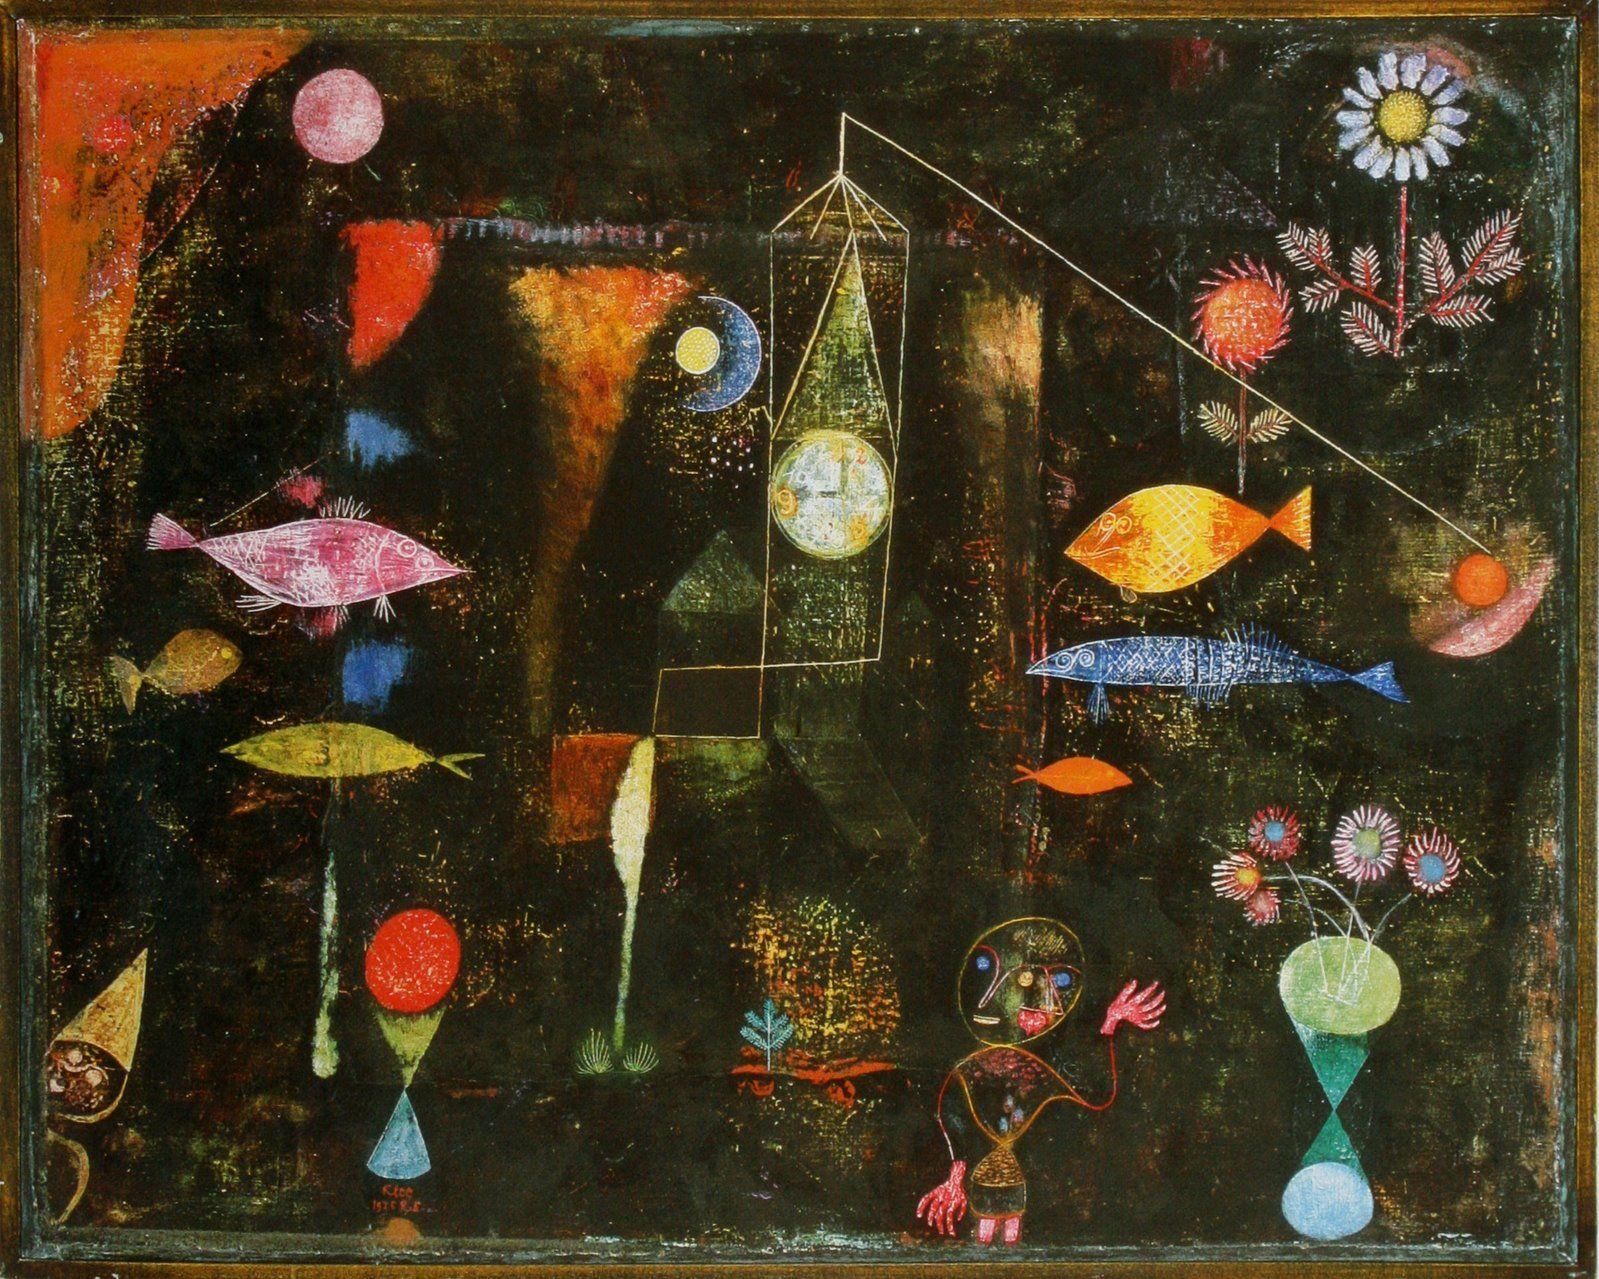 Paul Klee Pinturas Obras De Paul Klee Arte Para Vivir Art For Living Paul